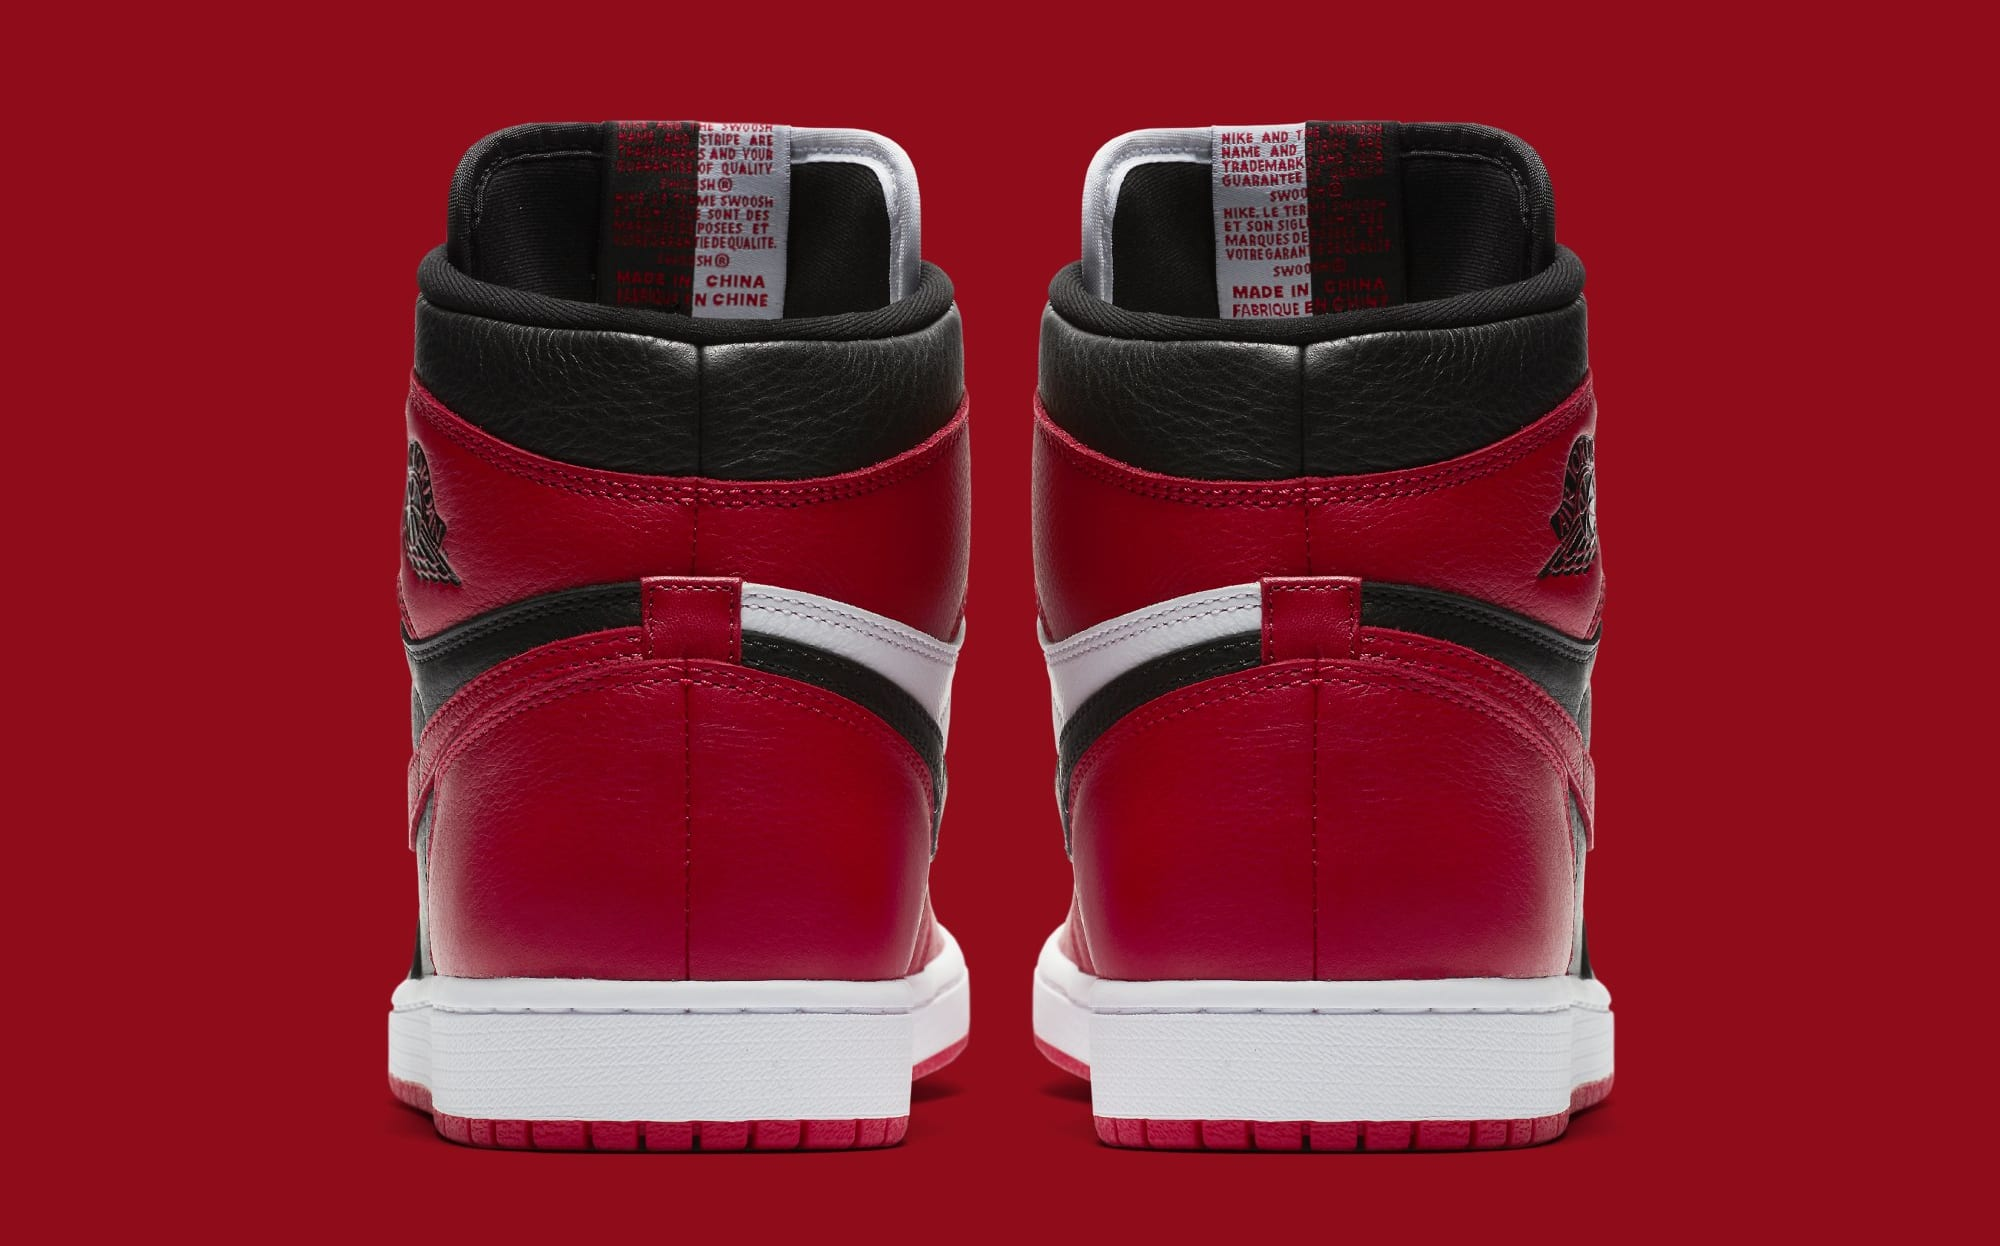 ... Image via Nike Air Jordan 1 Homage to Home 861428-061 (Heel) ... a5f7ad715